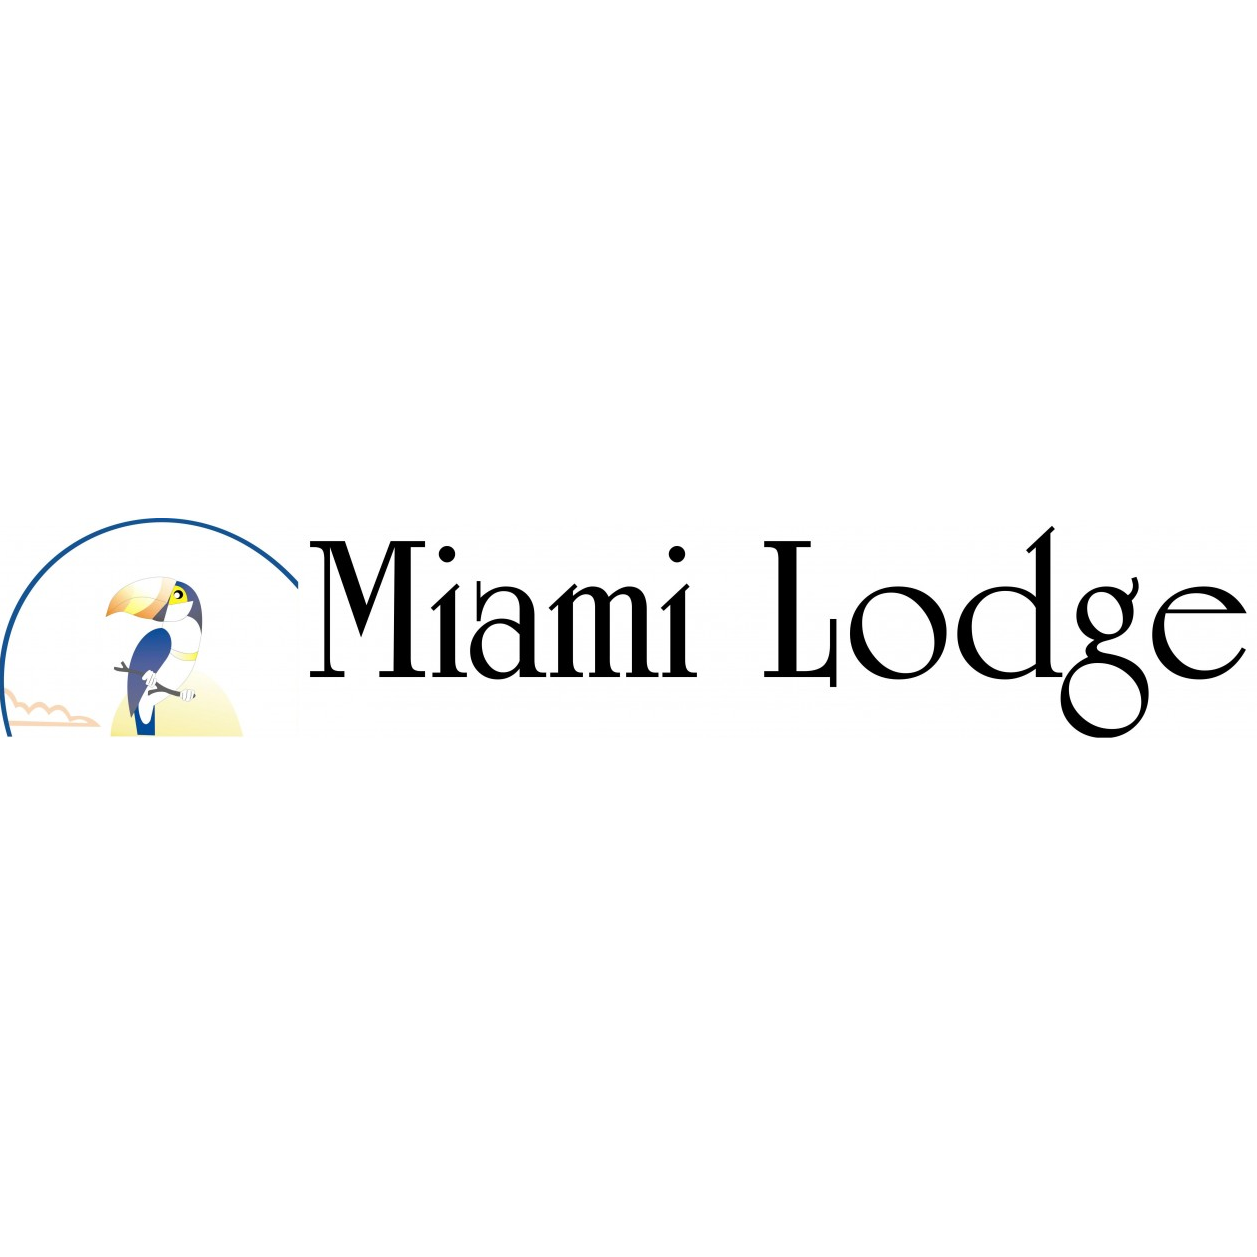 Miami Lodge